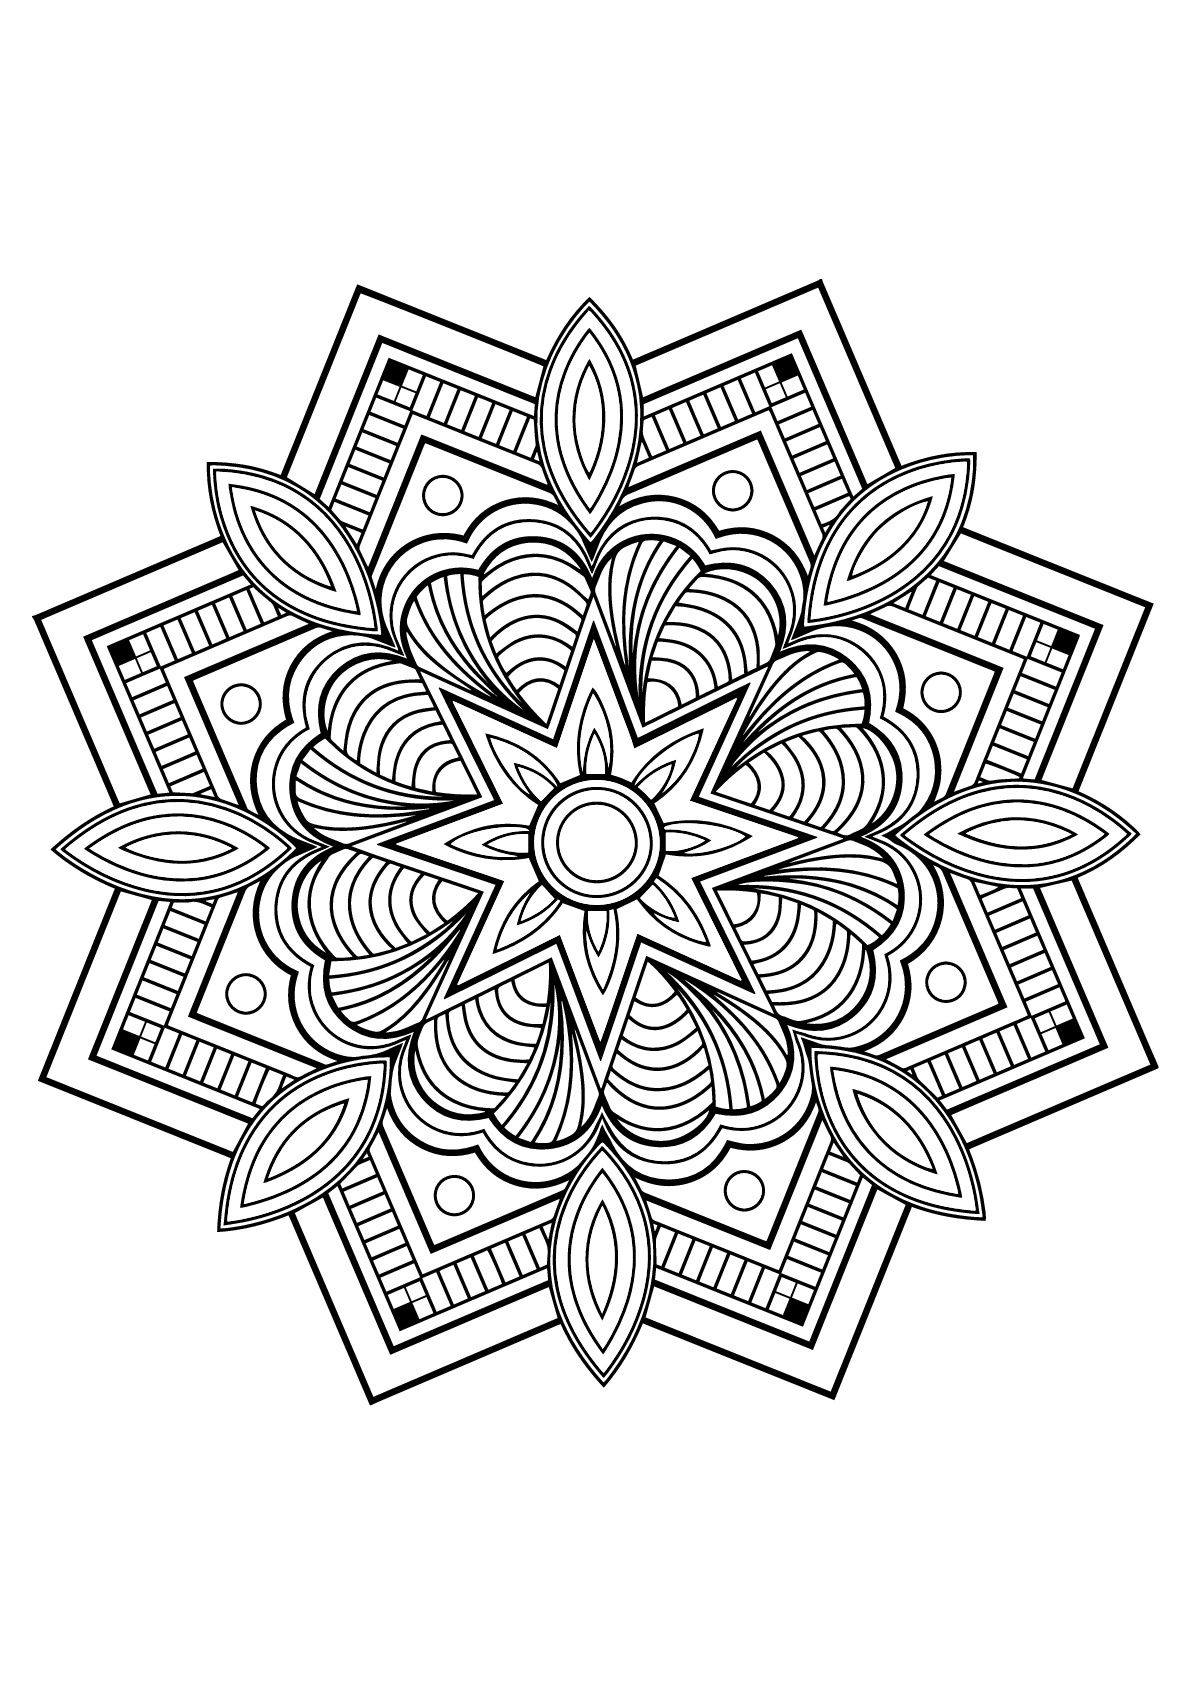 Mandala From Free Book For 10 Mandalas Justcolor Discover All Our Printable Colorin Mandala Coloring Pages Printable Coloring Book Mandala Coloring Books